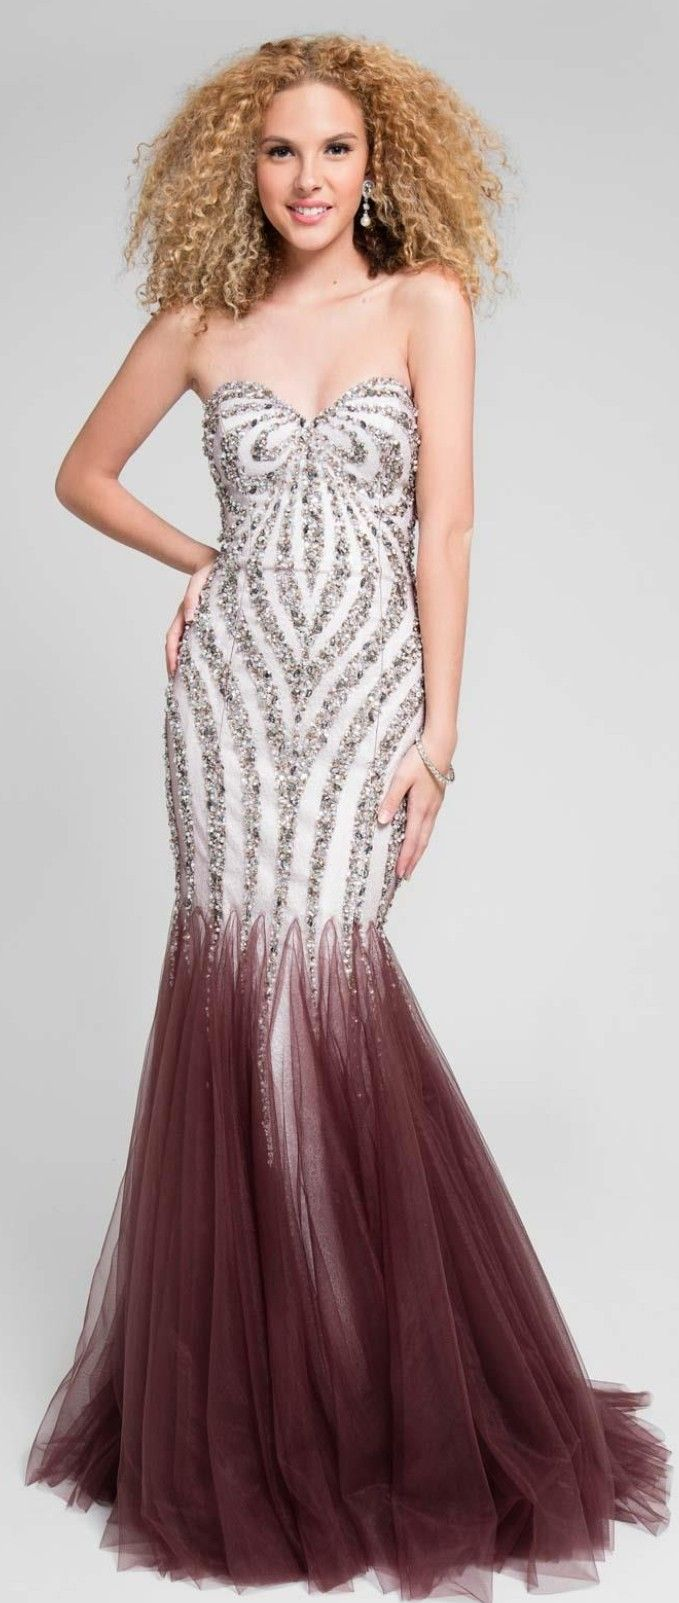 Pin by ansie de wet on all things burgundy pinterest dress designs